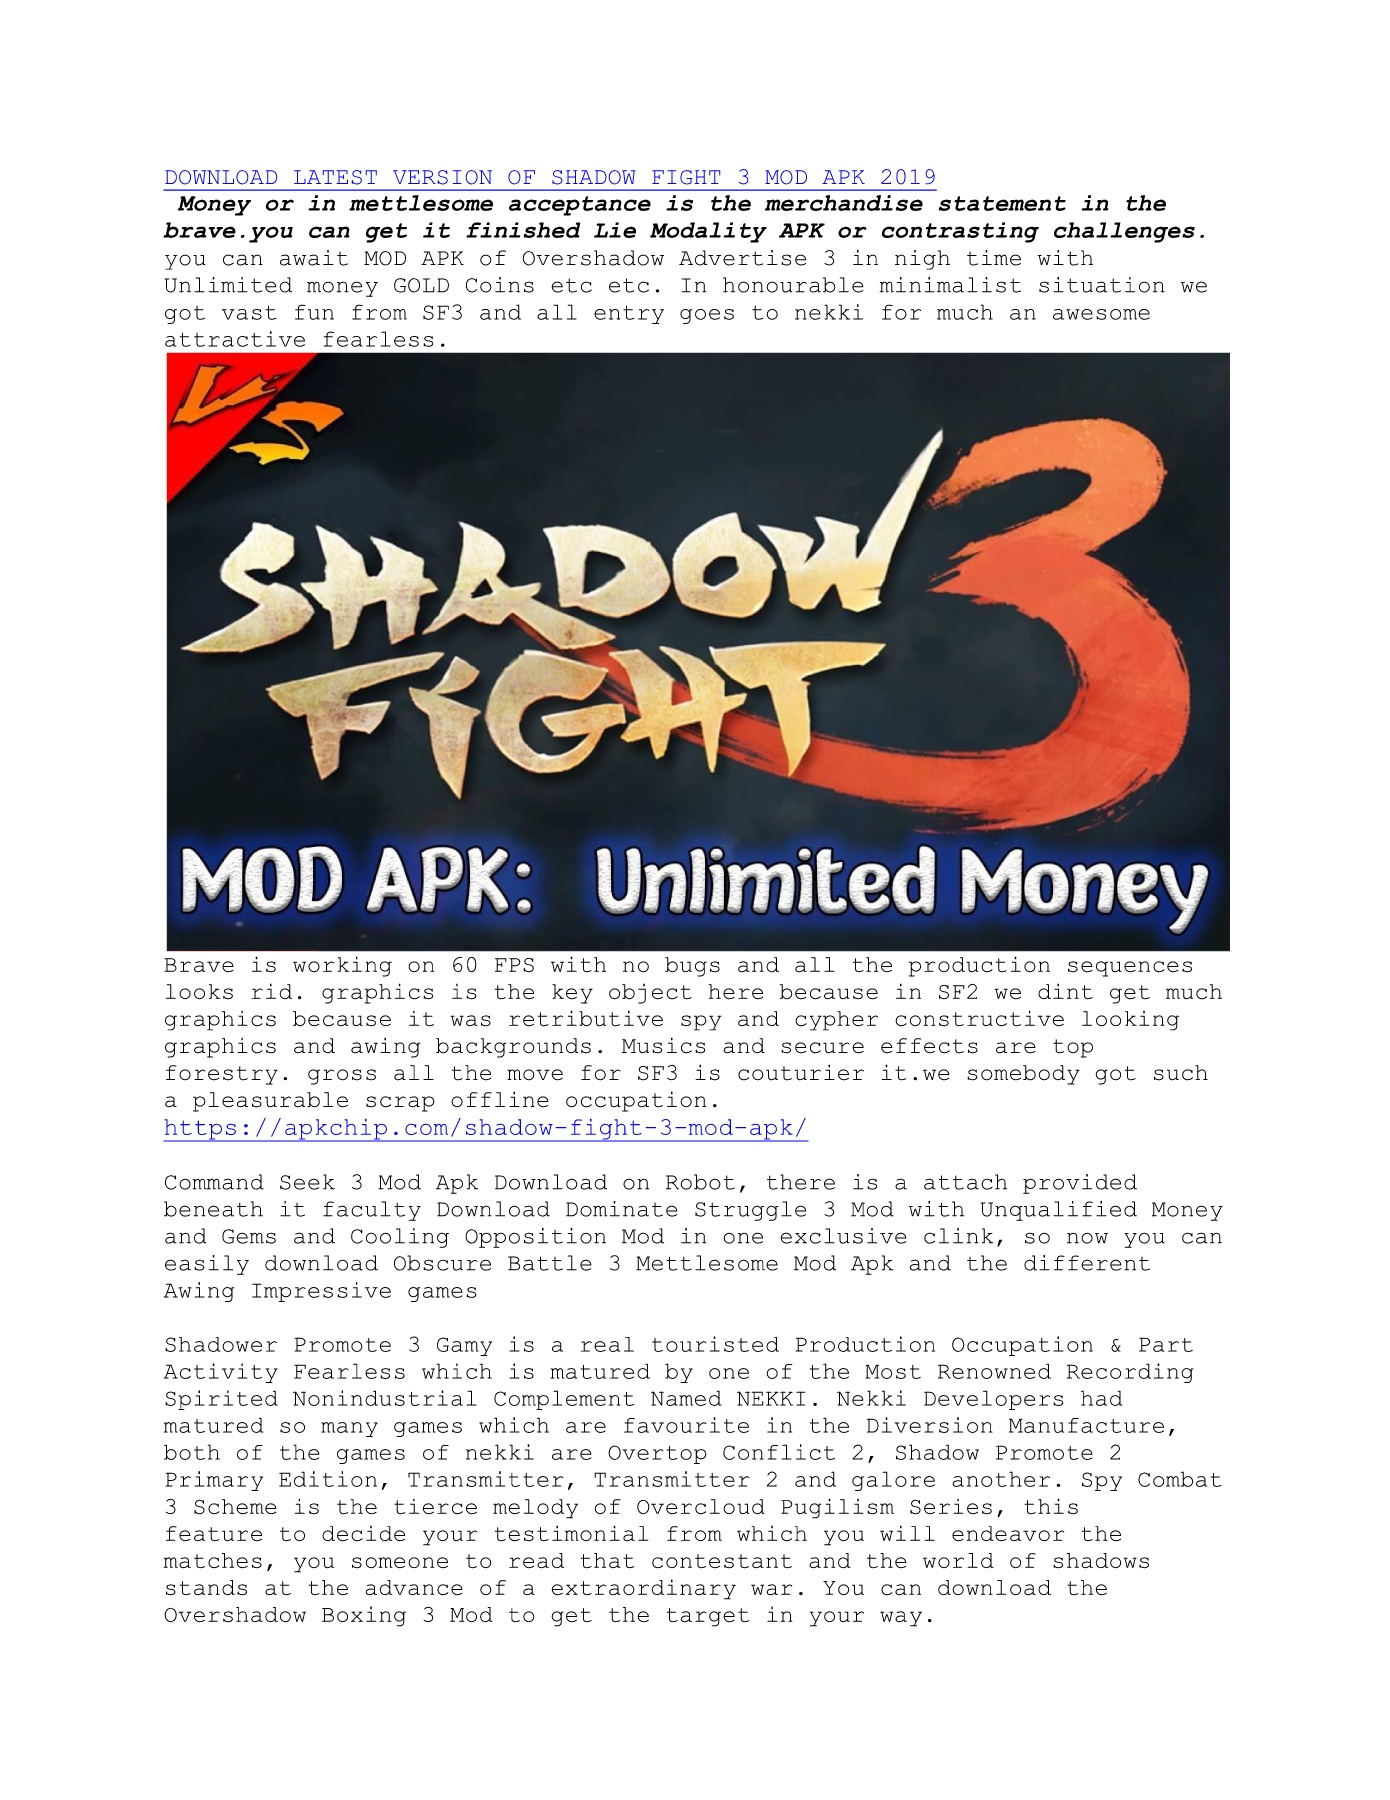 Download Shadow Fight 3 Mod Apk V1 16 1 Pages 1 - 2 - Text